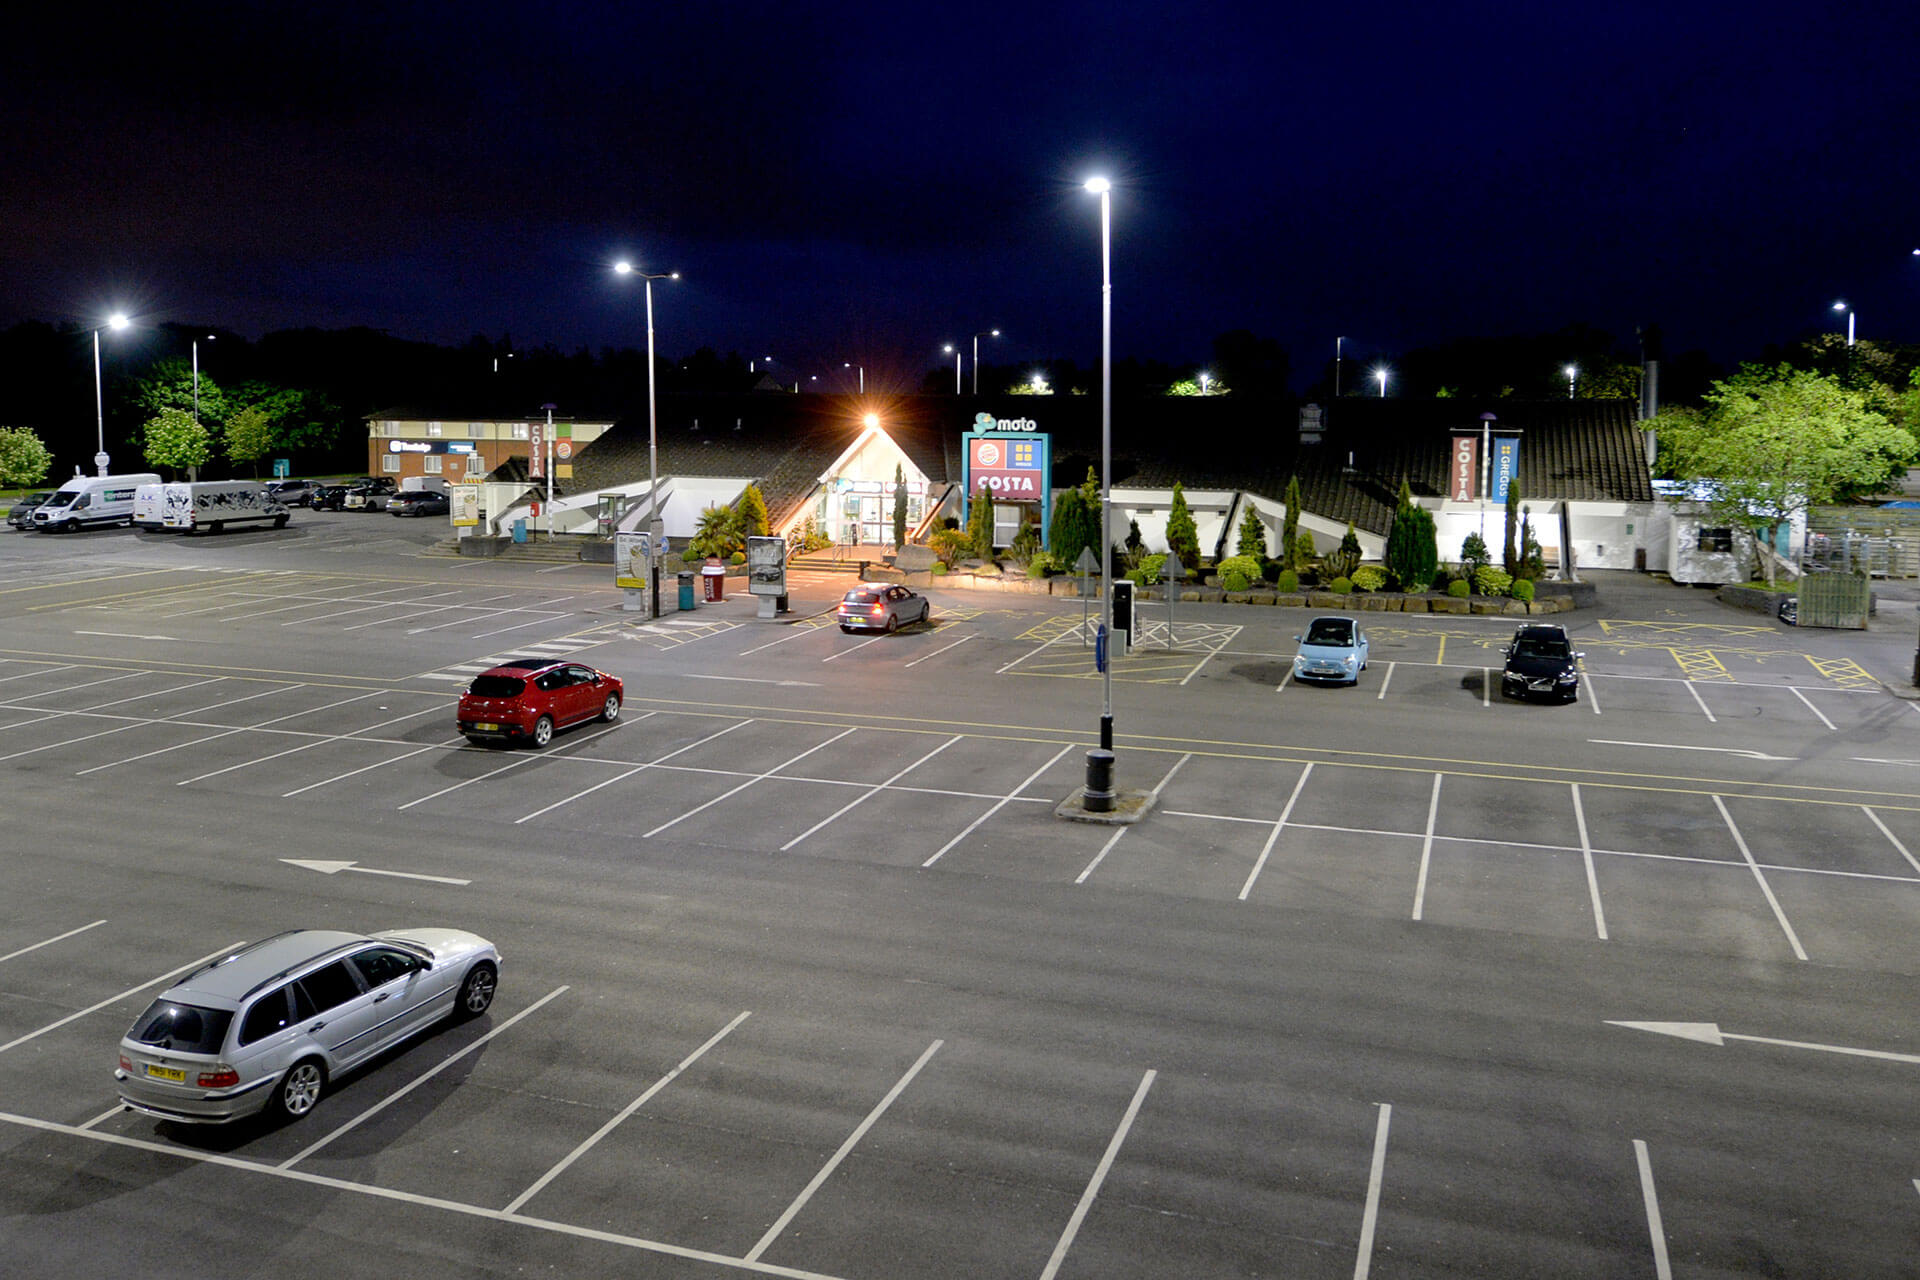 Ampera LED luminaires were installed with low inclination to project the light further, reducing the quantity